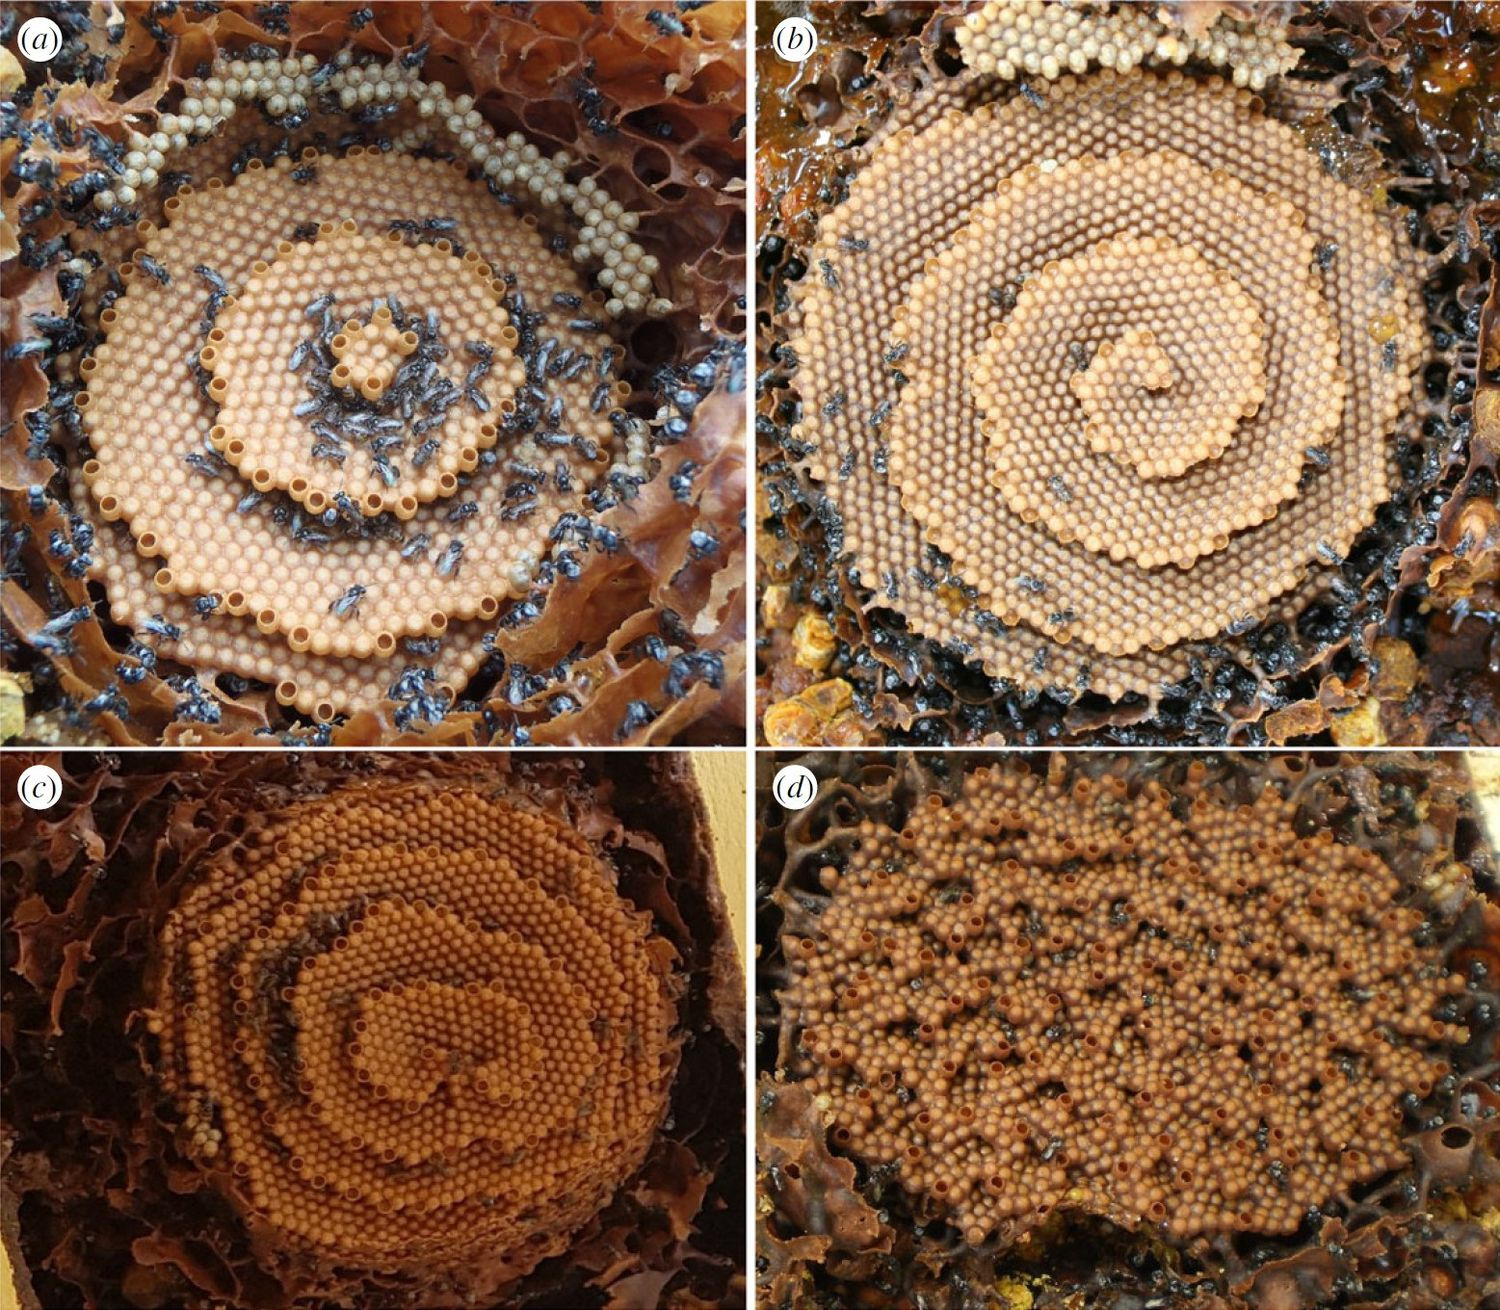 The bees that form artistic honeycombs, the Tetragula Carbonaria, create beauty out of chaos.